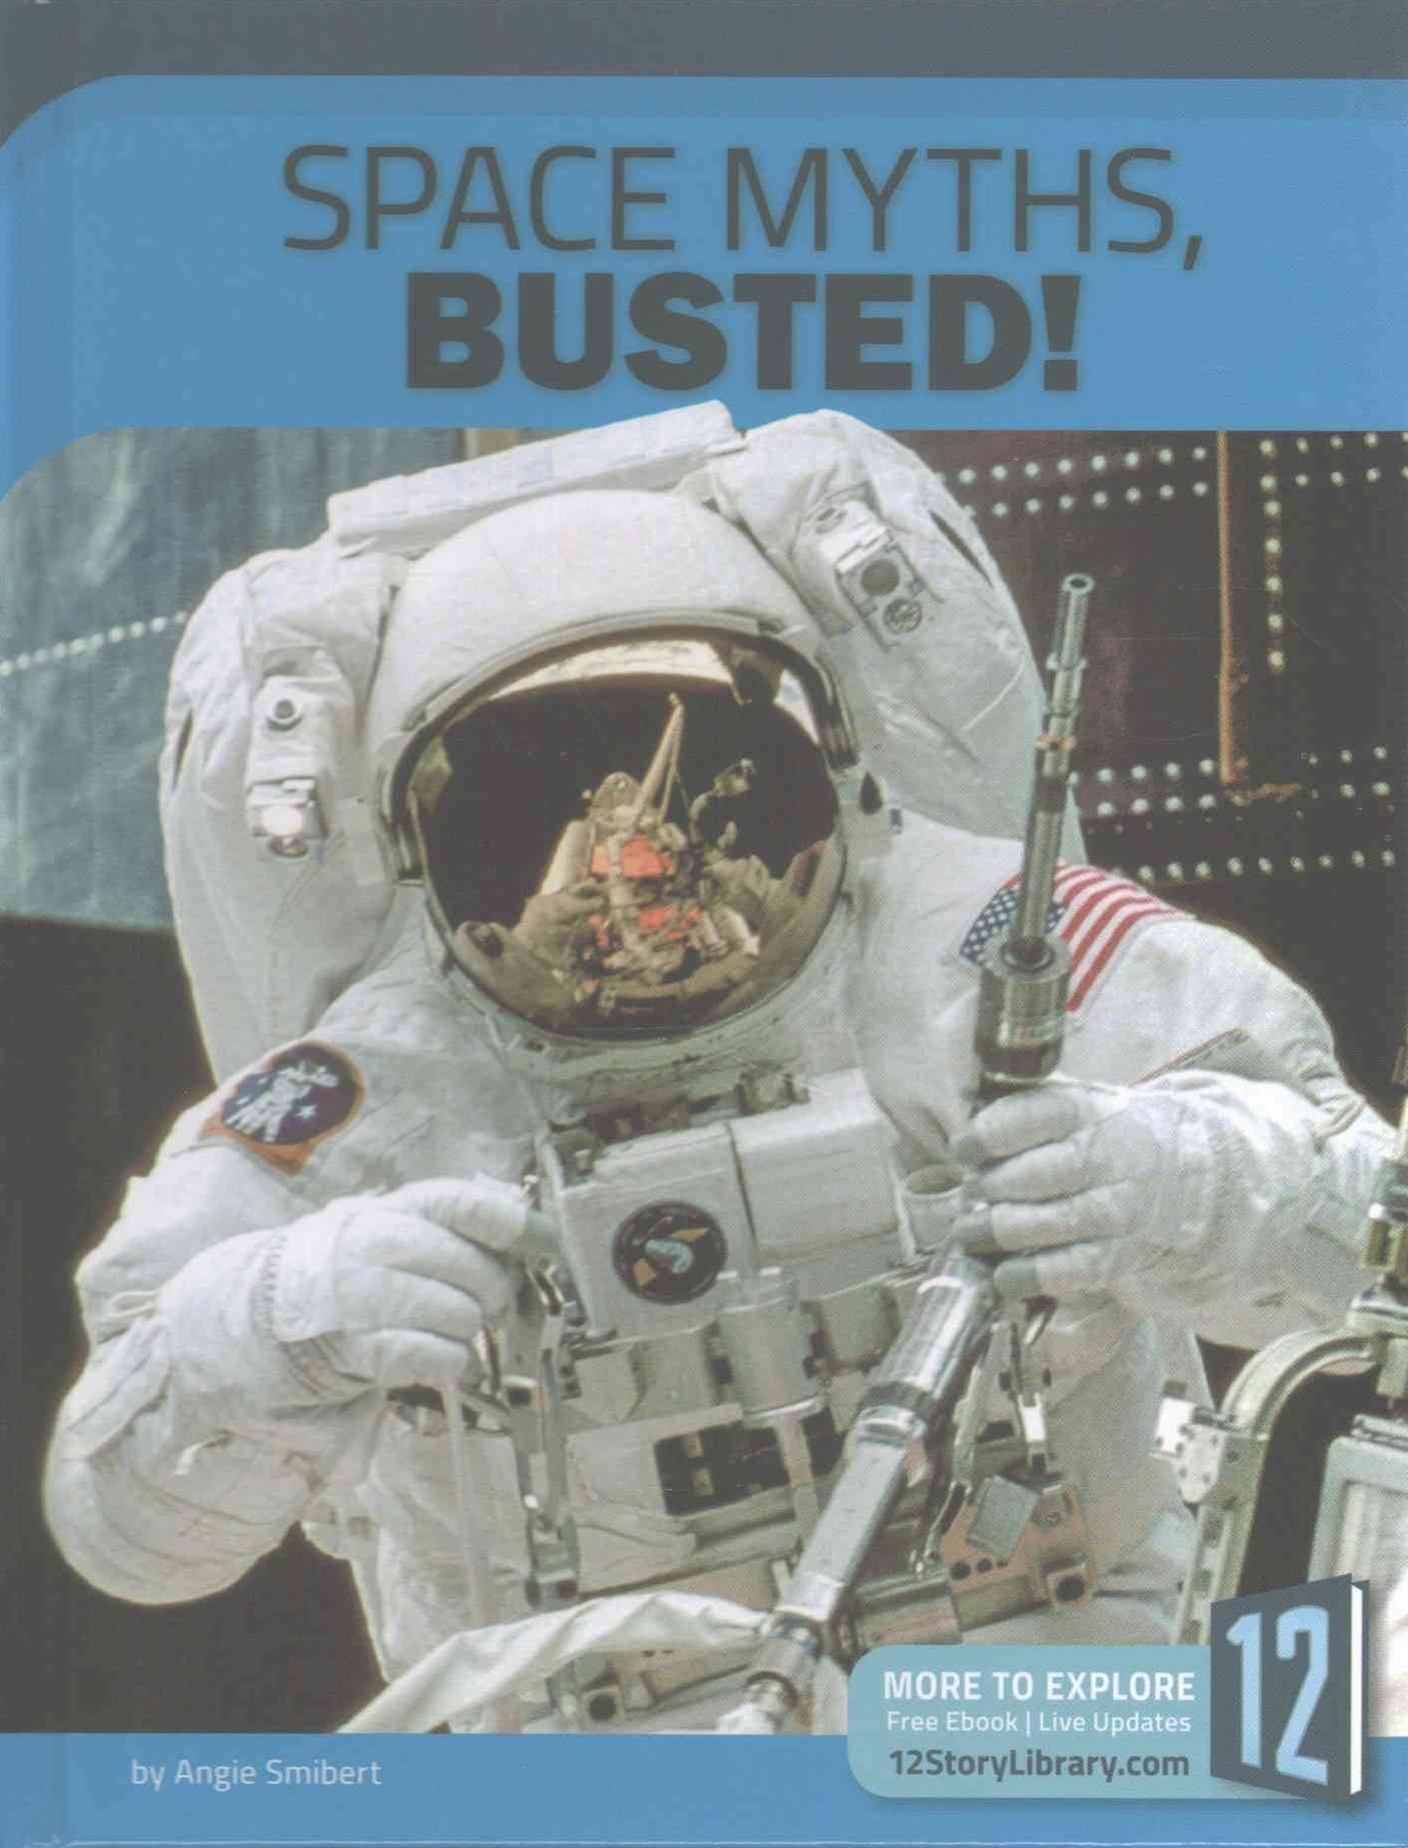 Space Myths, Busted!